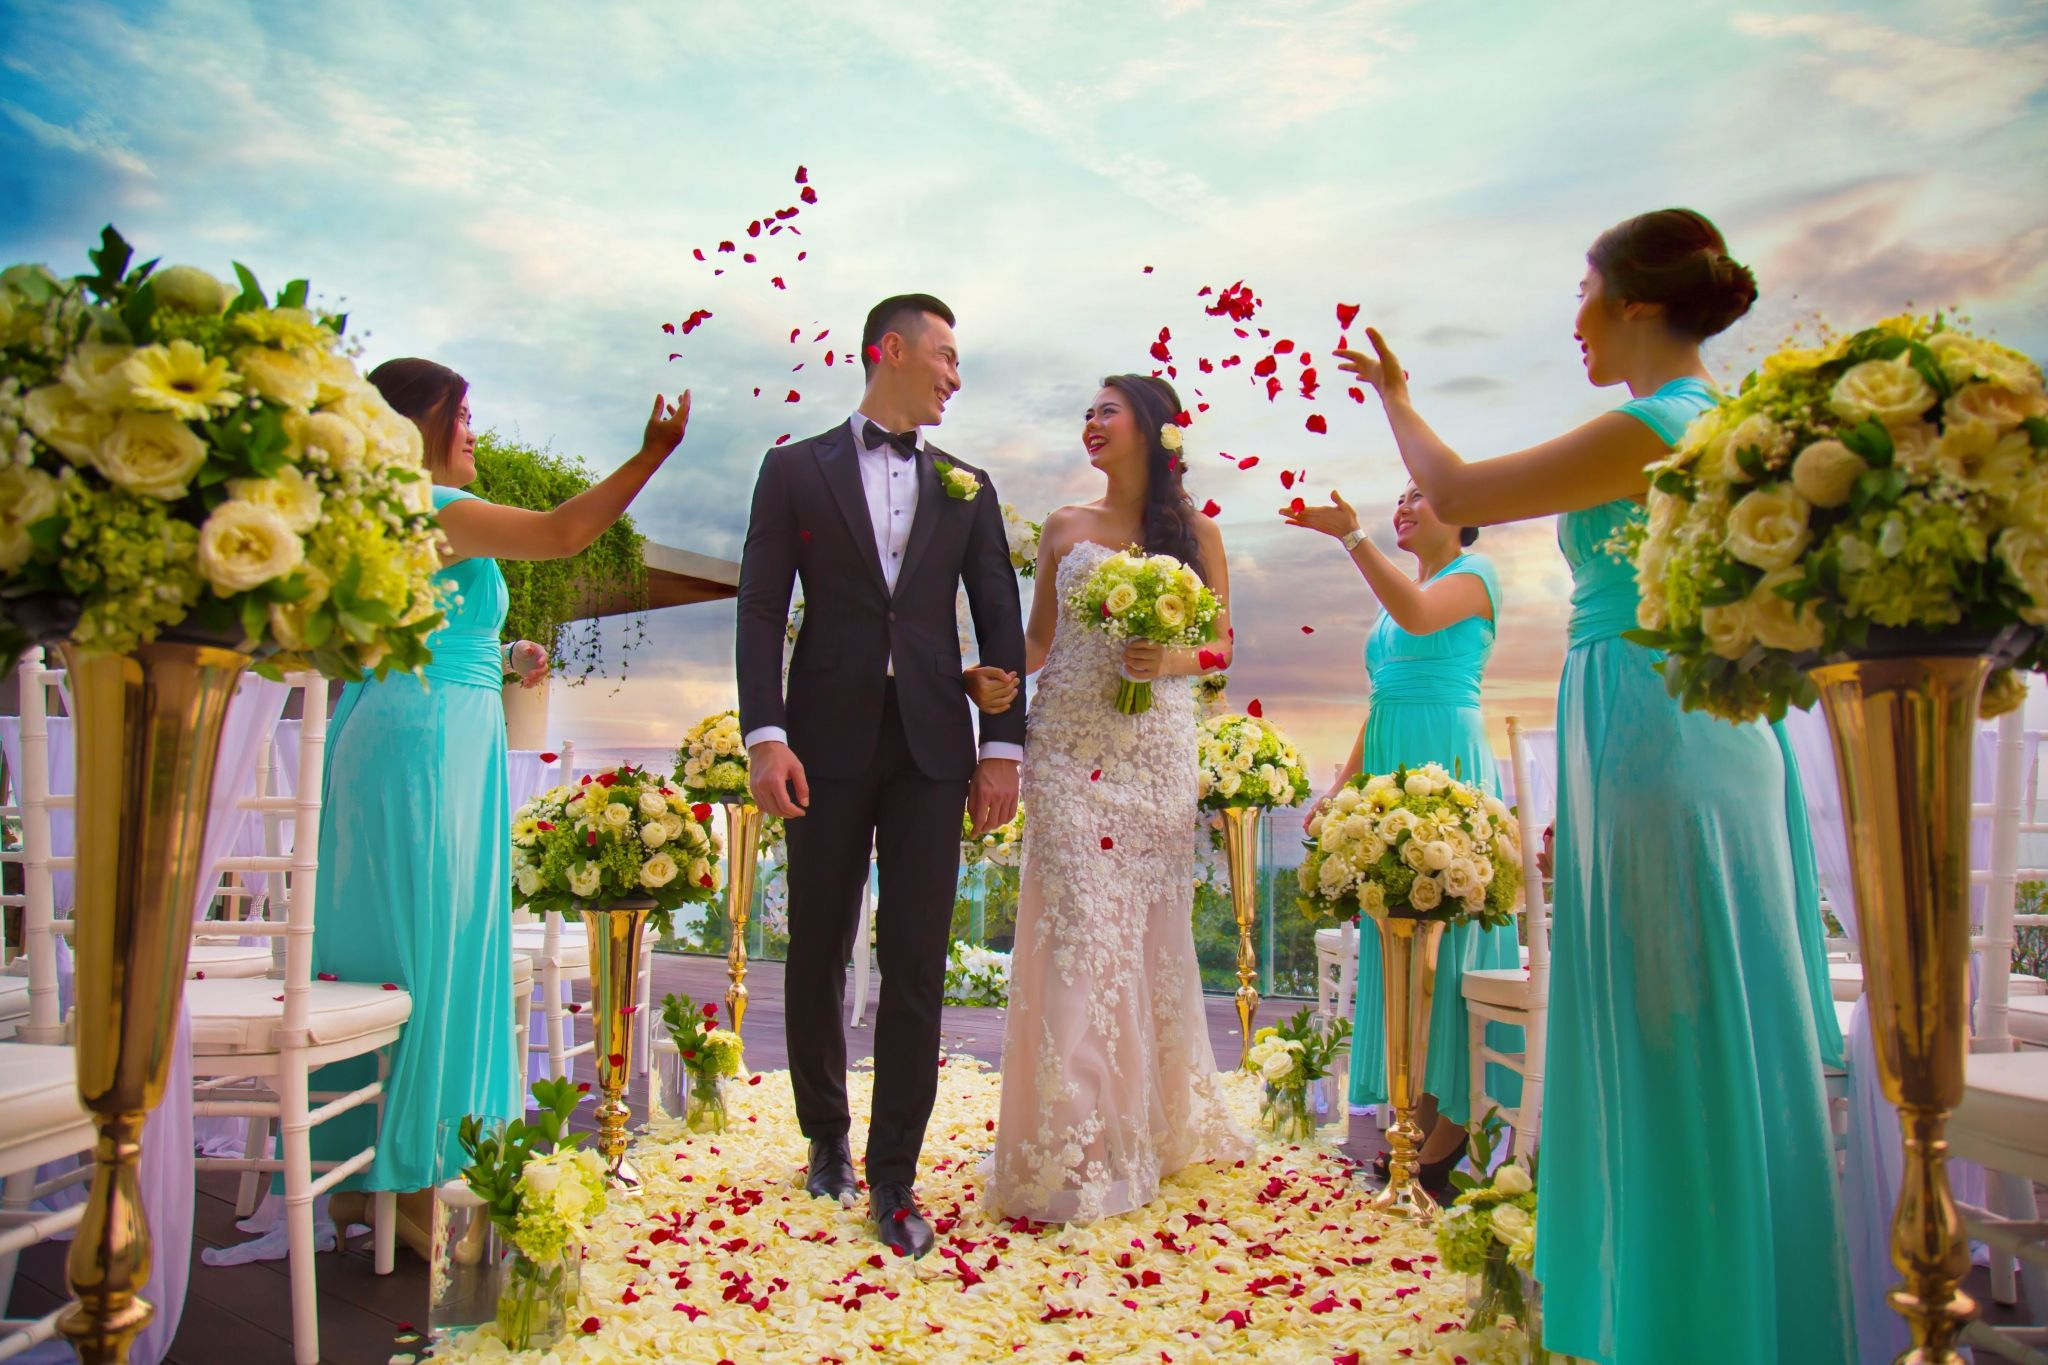 Sunset Intimate Wedding at Presidential Suite | Sheraton Bali Kuta Resort